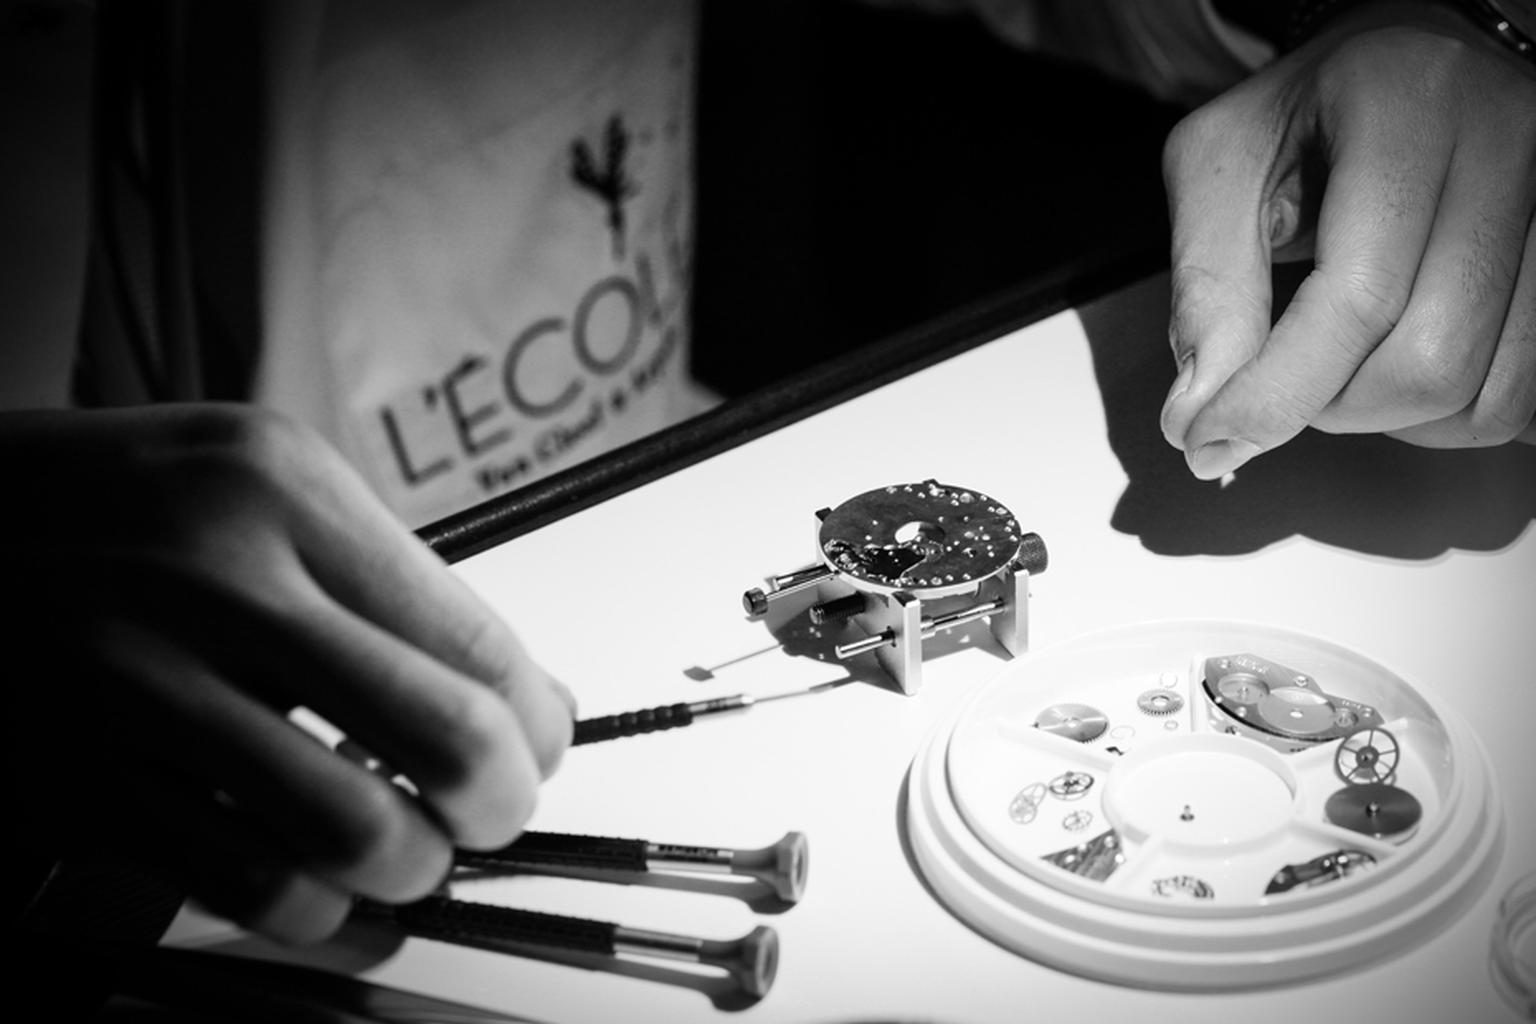 The watchmaking workshop at L'École Van Cleef & Arpels enables students to learn the intricacies of a mechanical watch